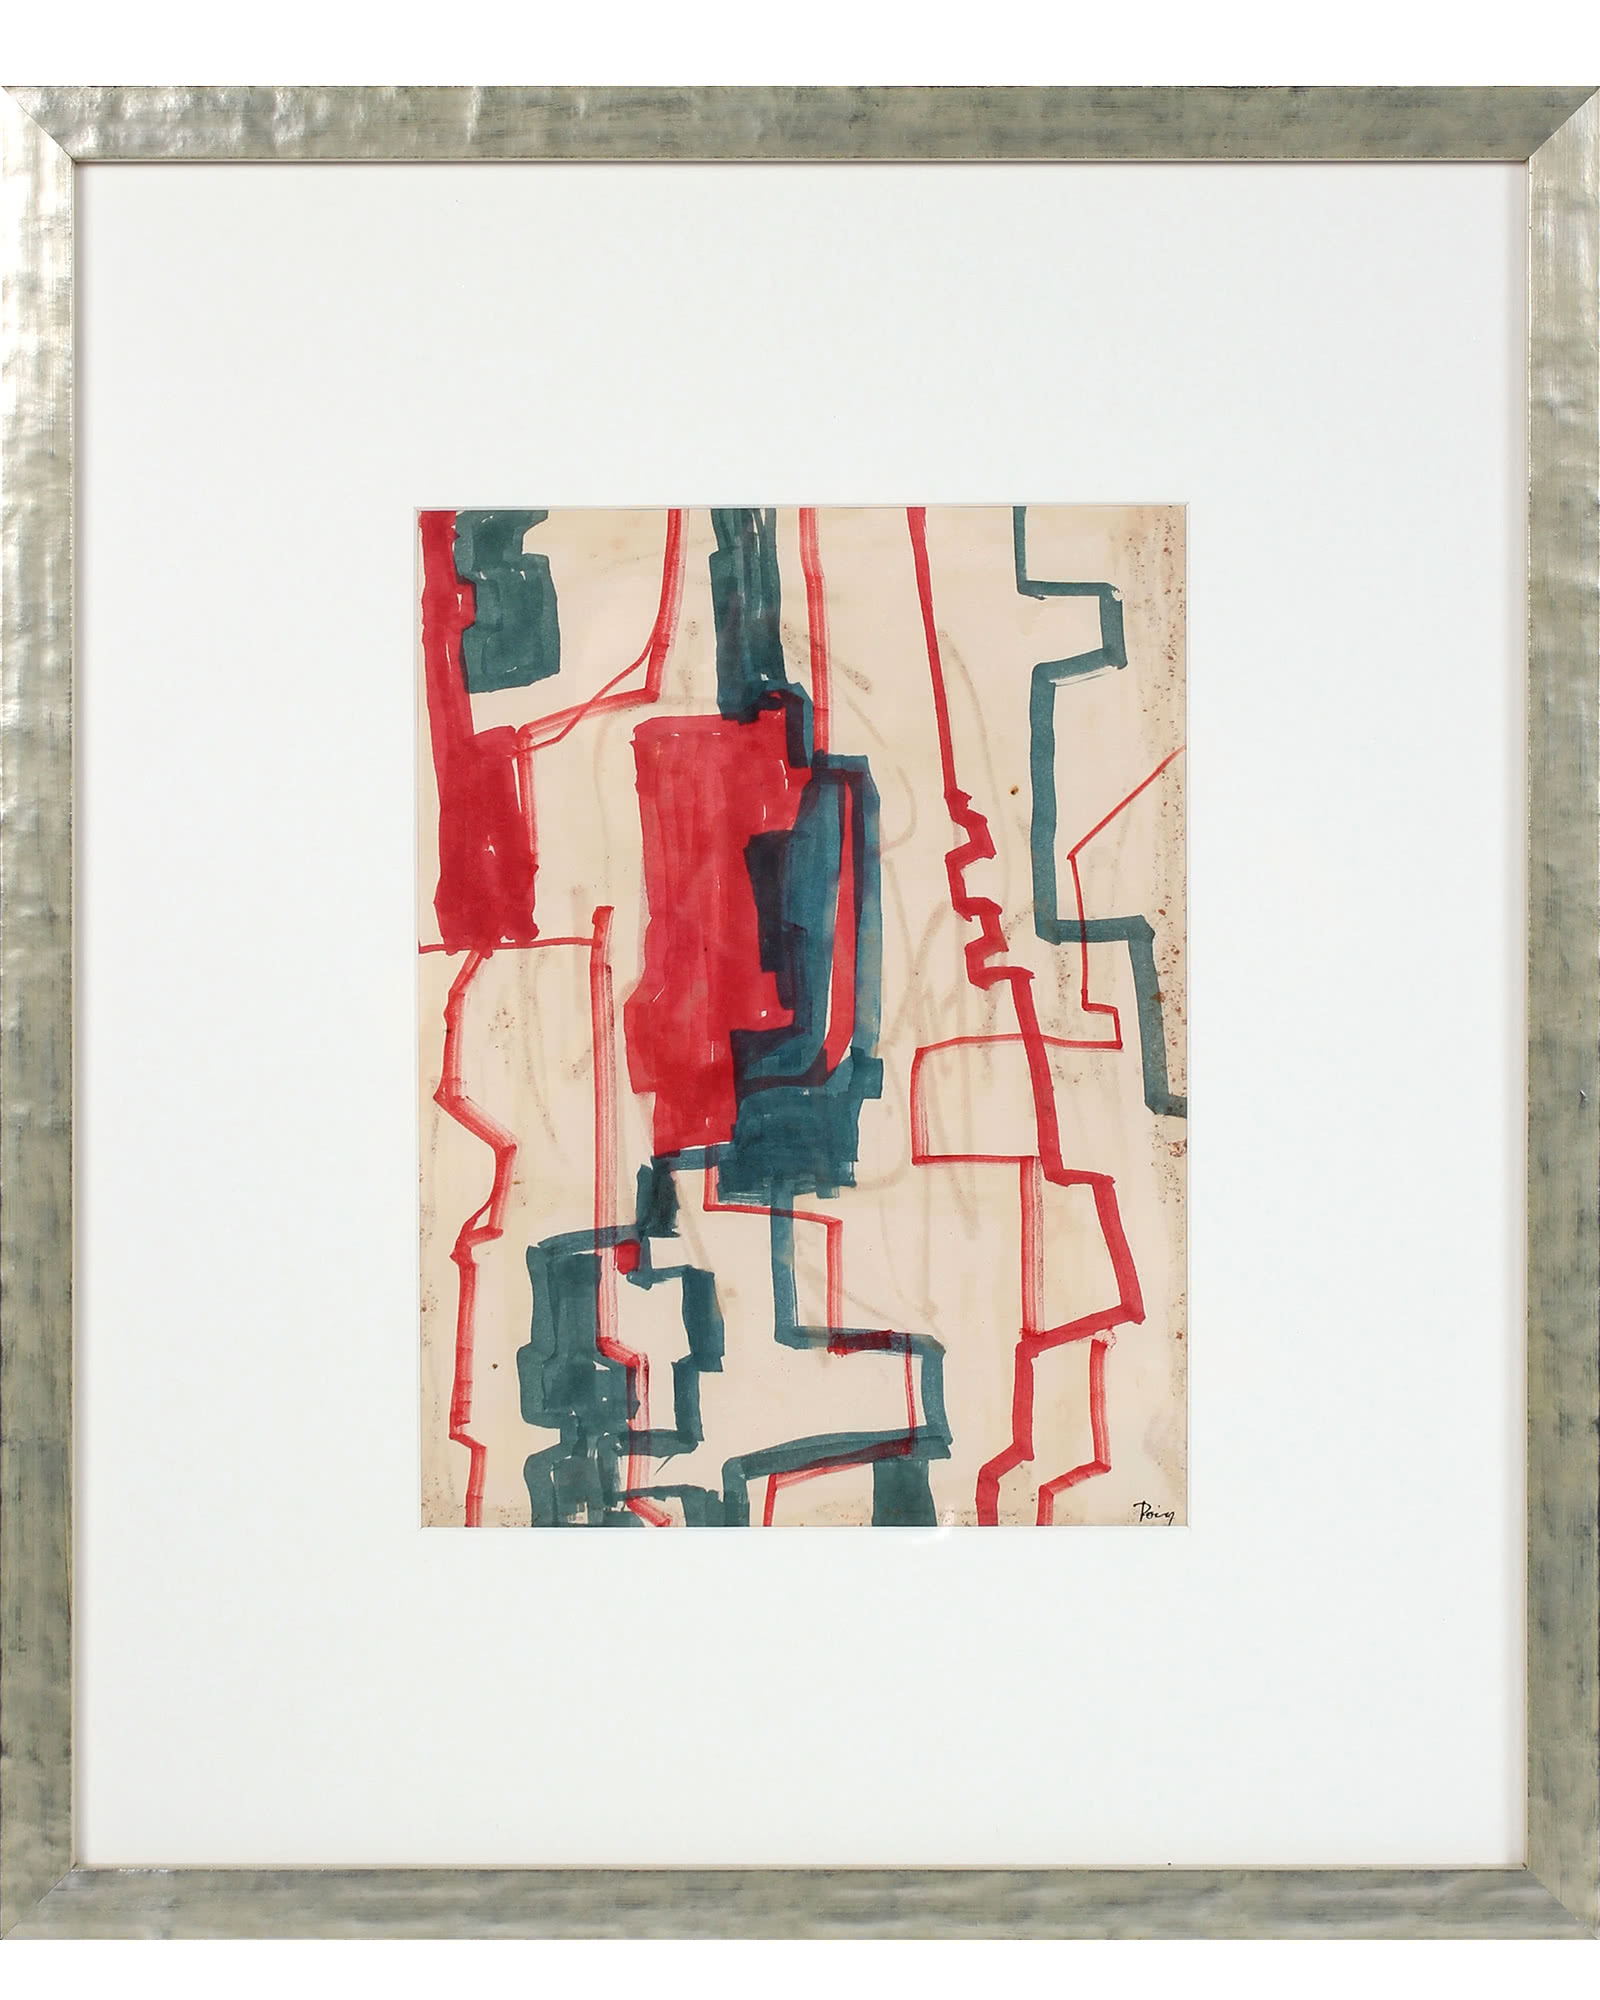 """Geometric Abstract in Red & Blue"" by Raphael Roig,"